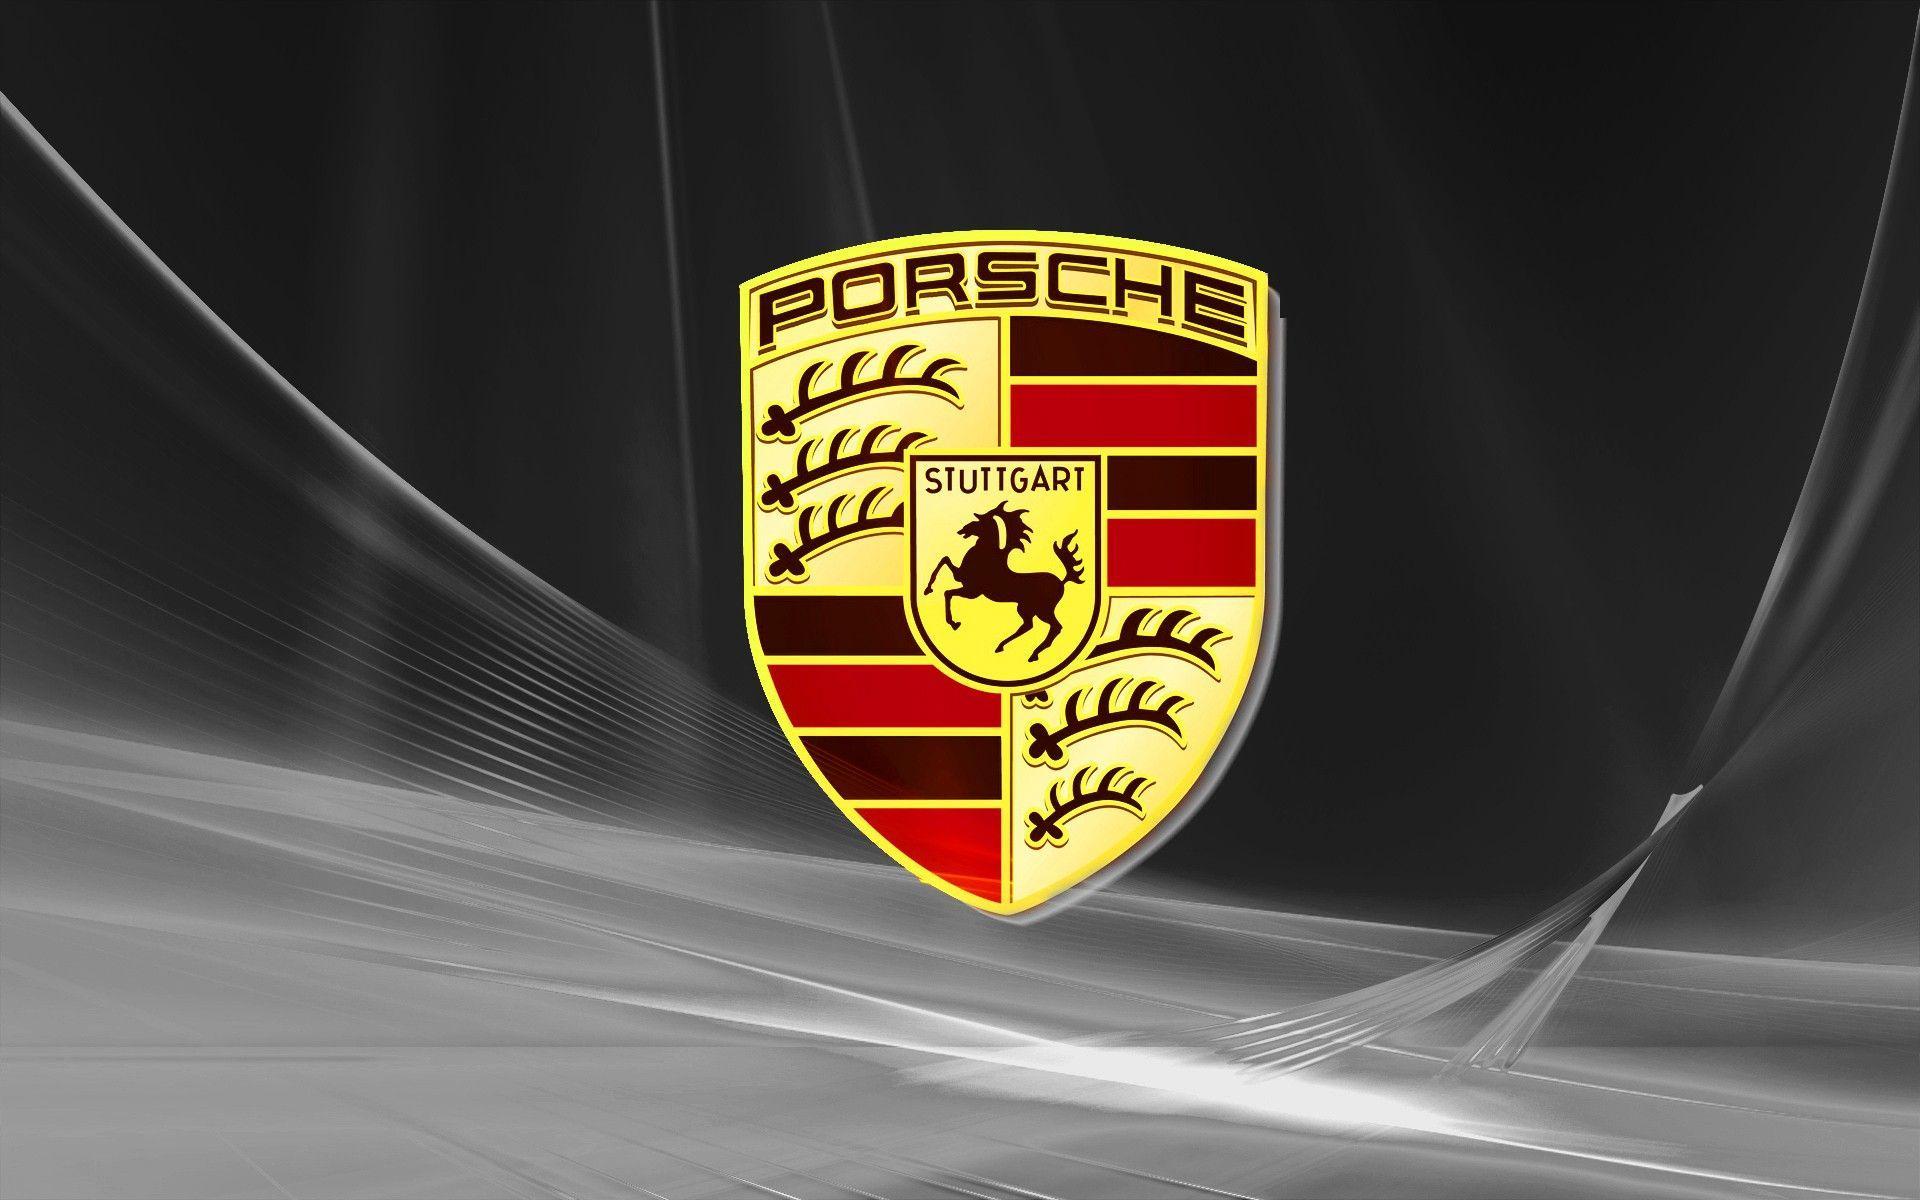 Car Brands Logo >> Porsche Logo Wallpapers - Wallpaper Cave